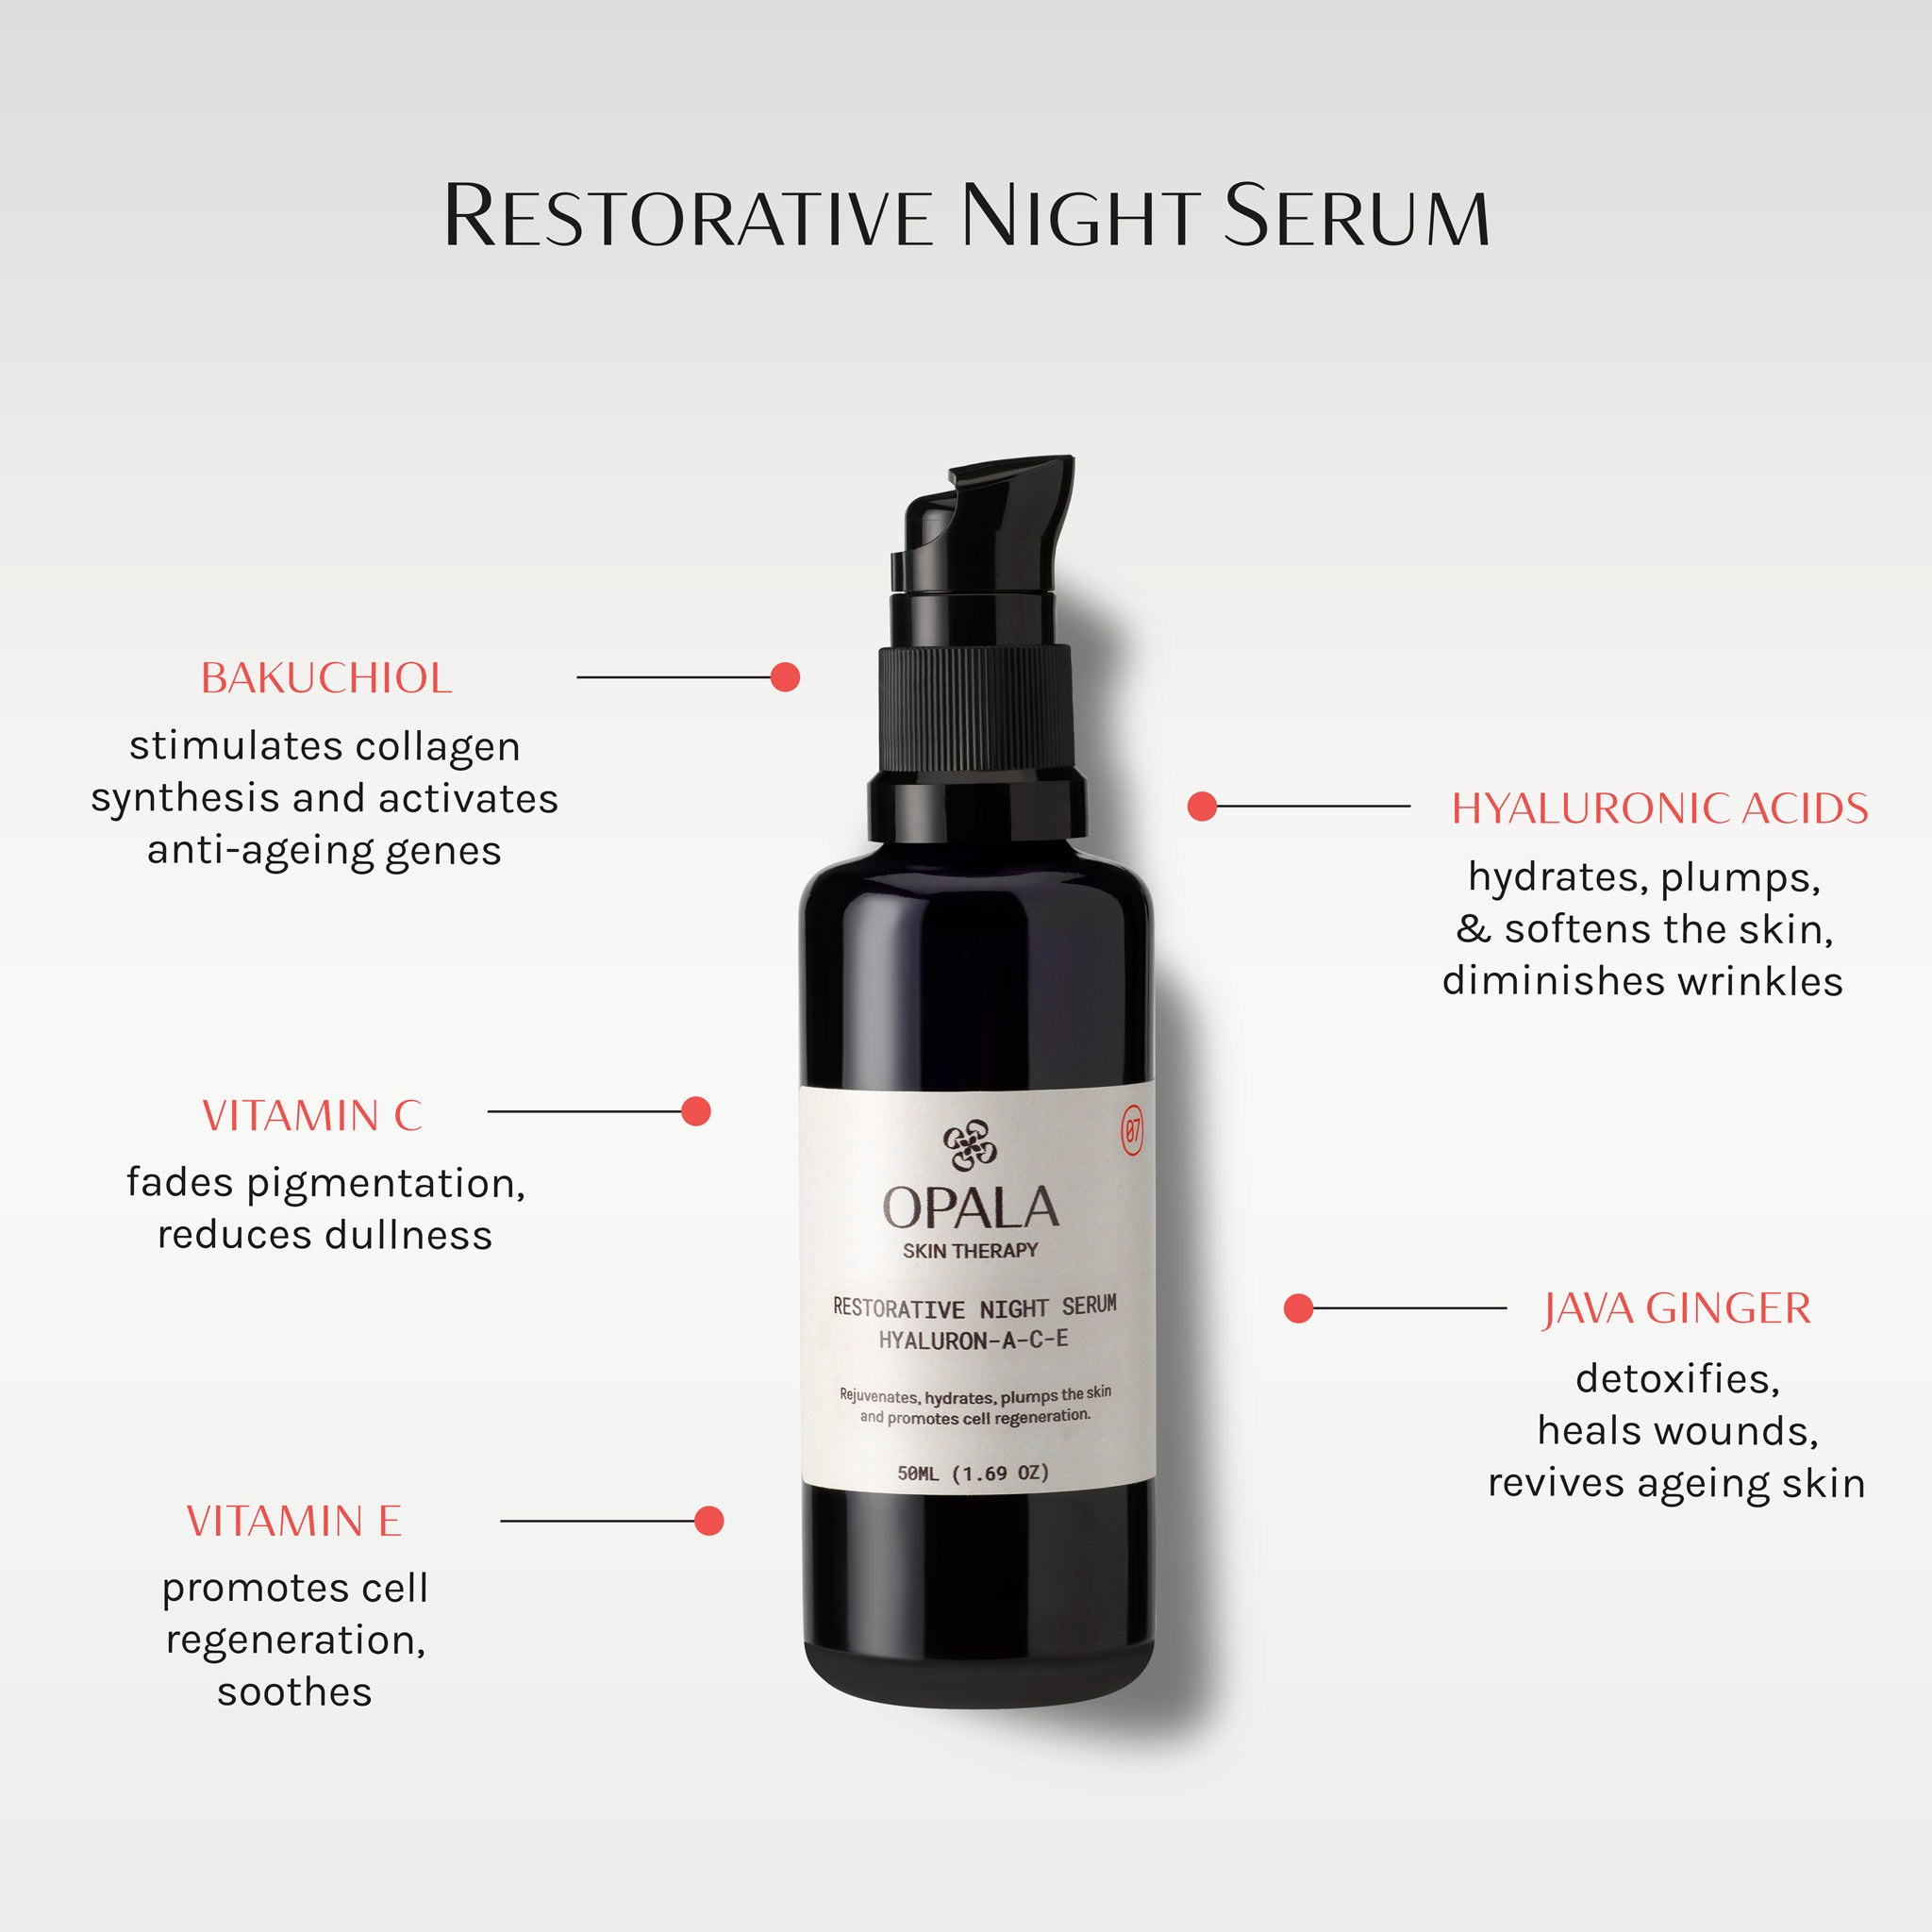 Hyaluron-A-C-E Restorative Night Serum